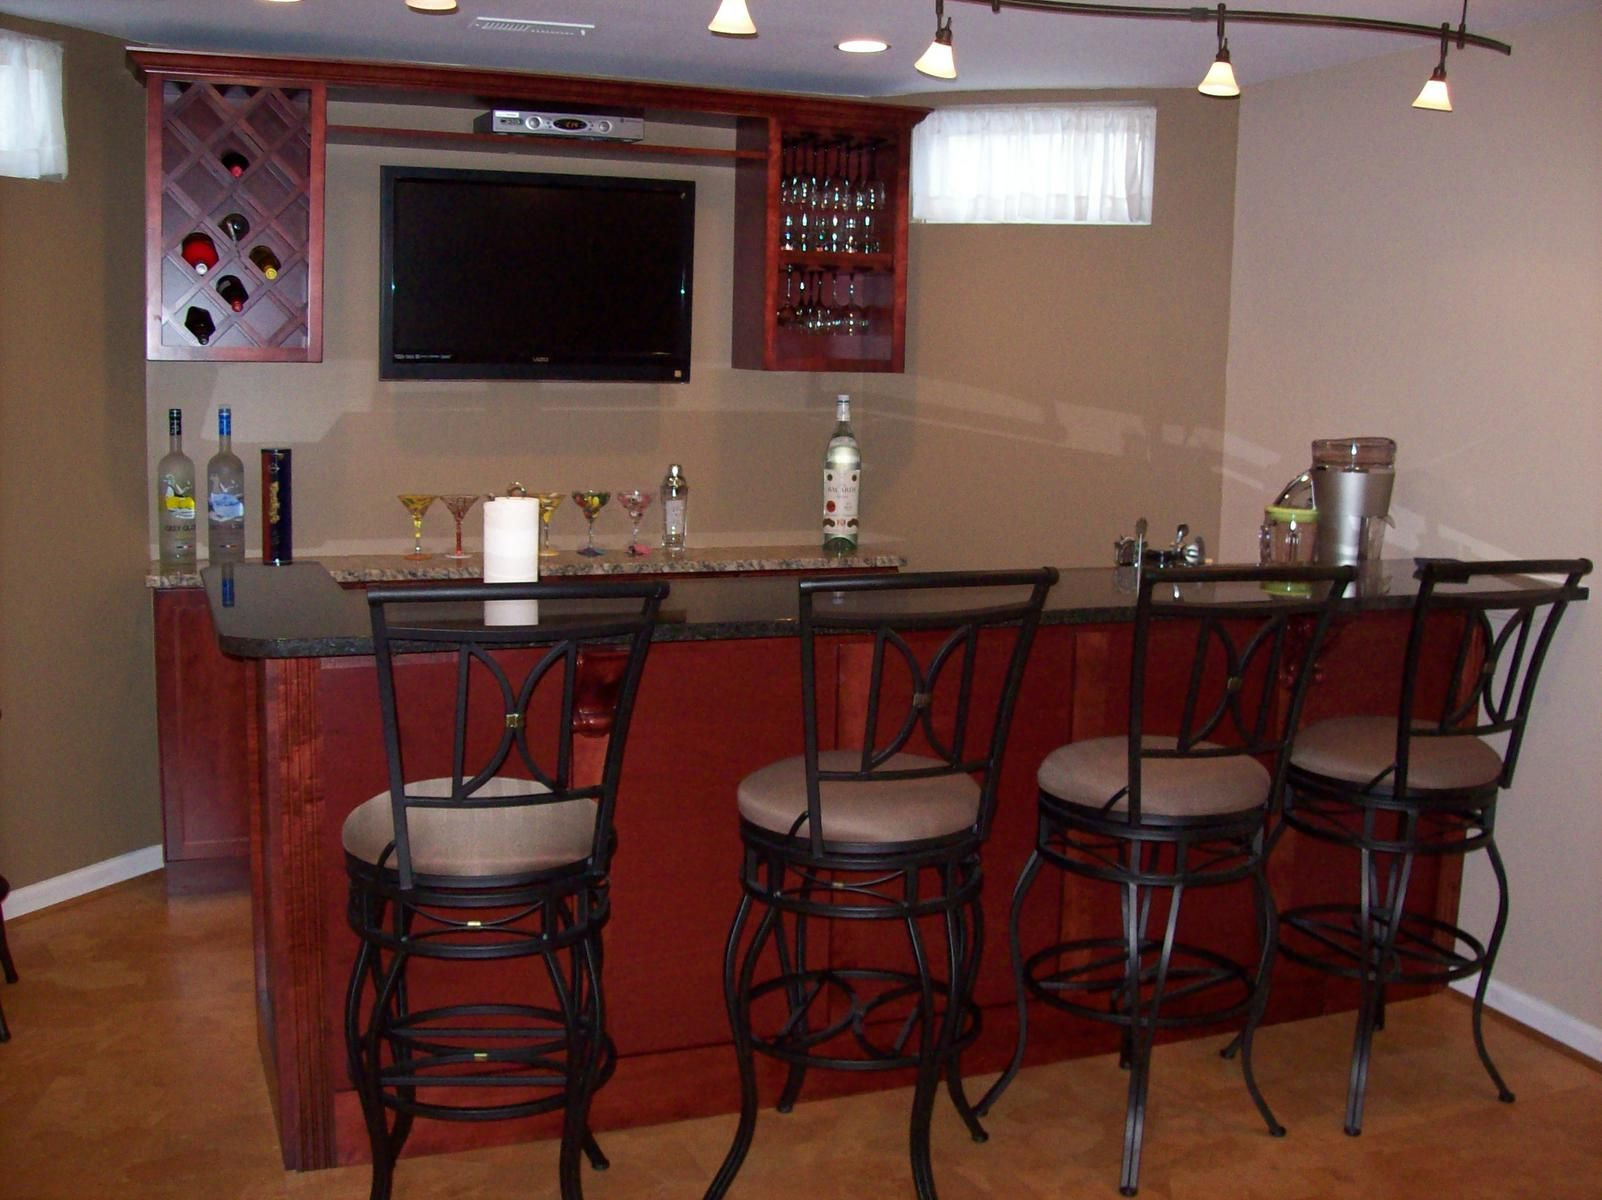 Hand crafted basement bar by sdg home solutions - Designing a basement bar ...